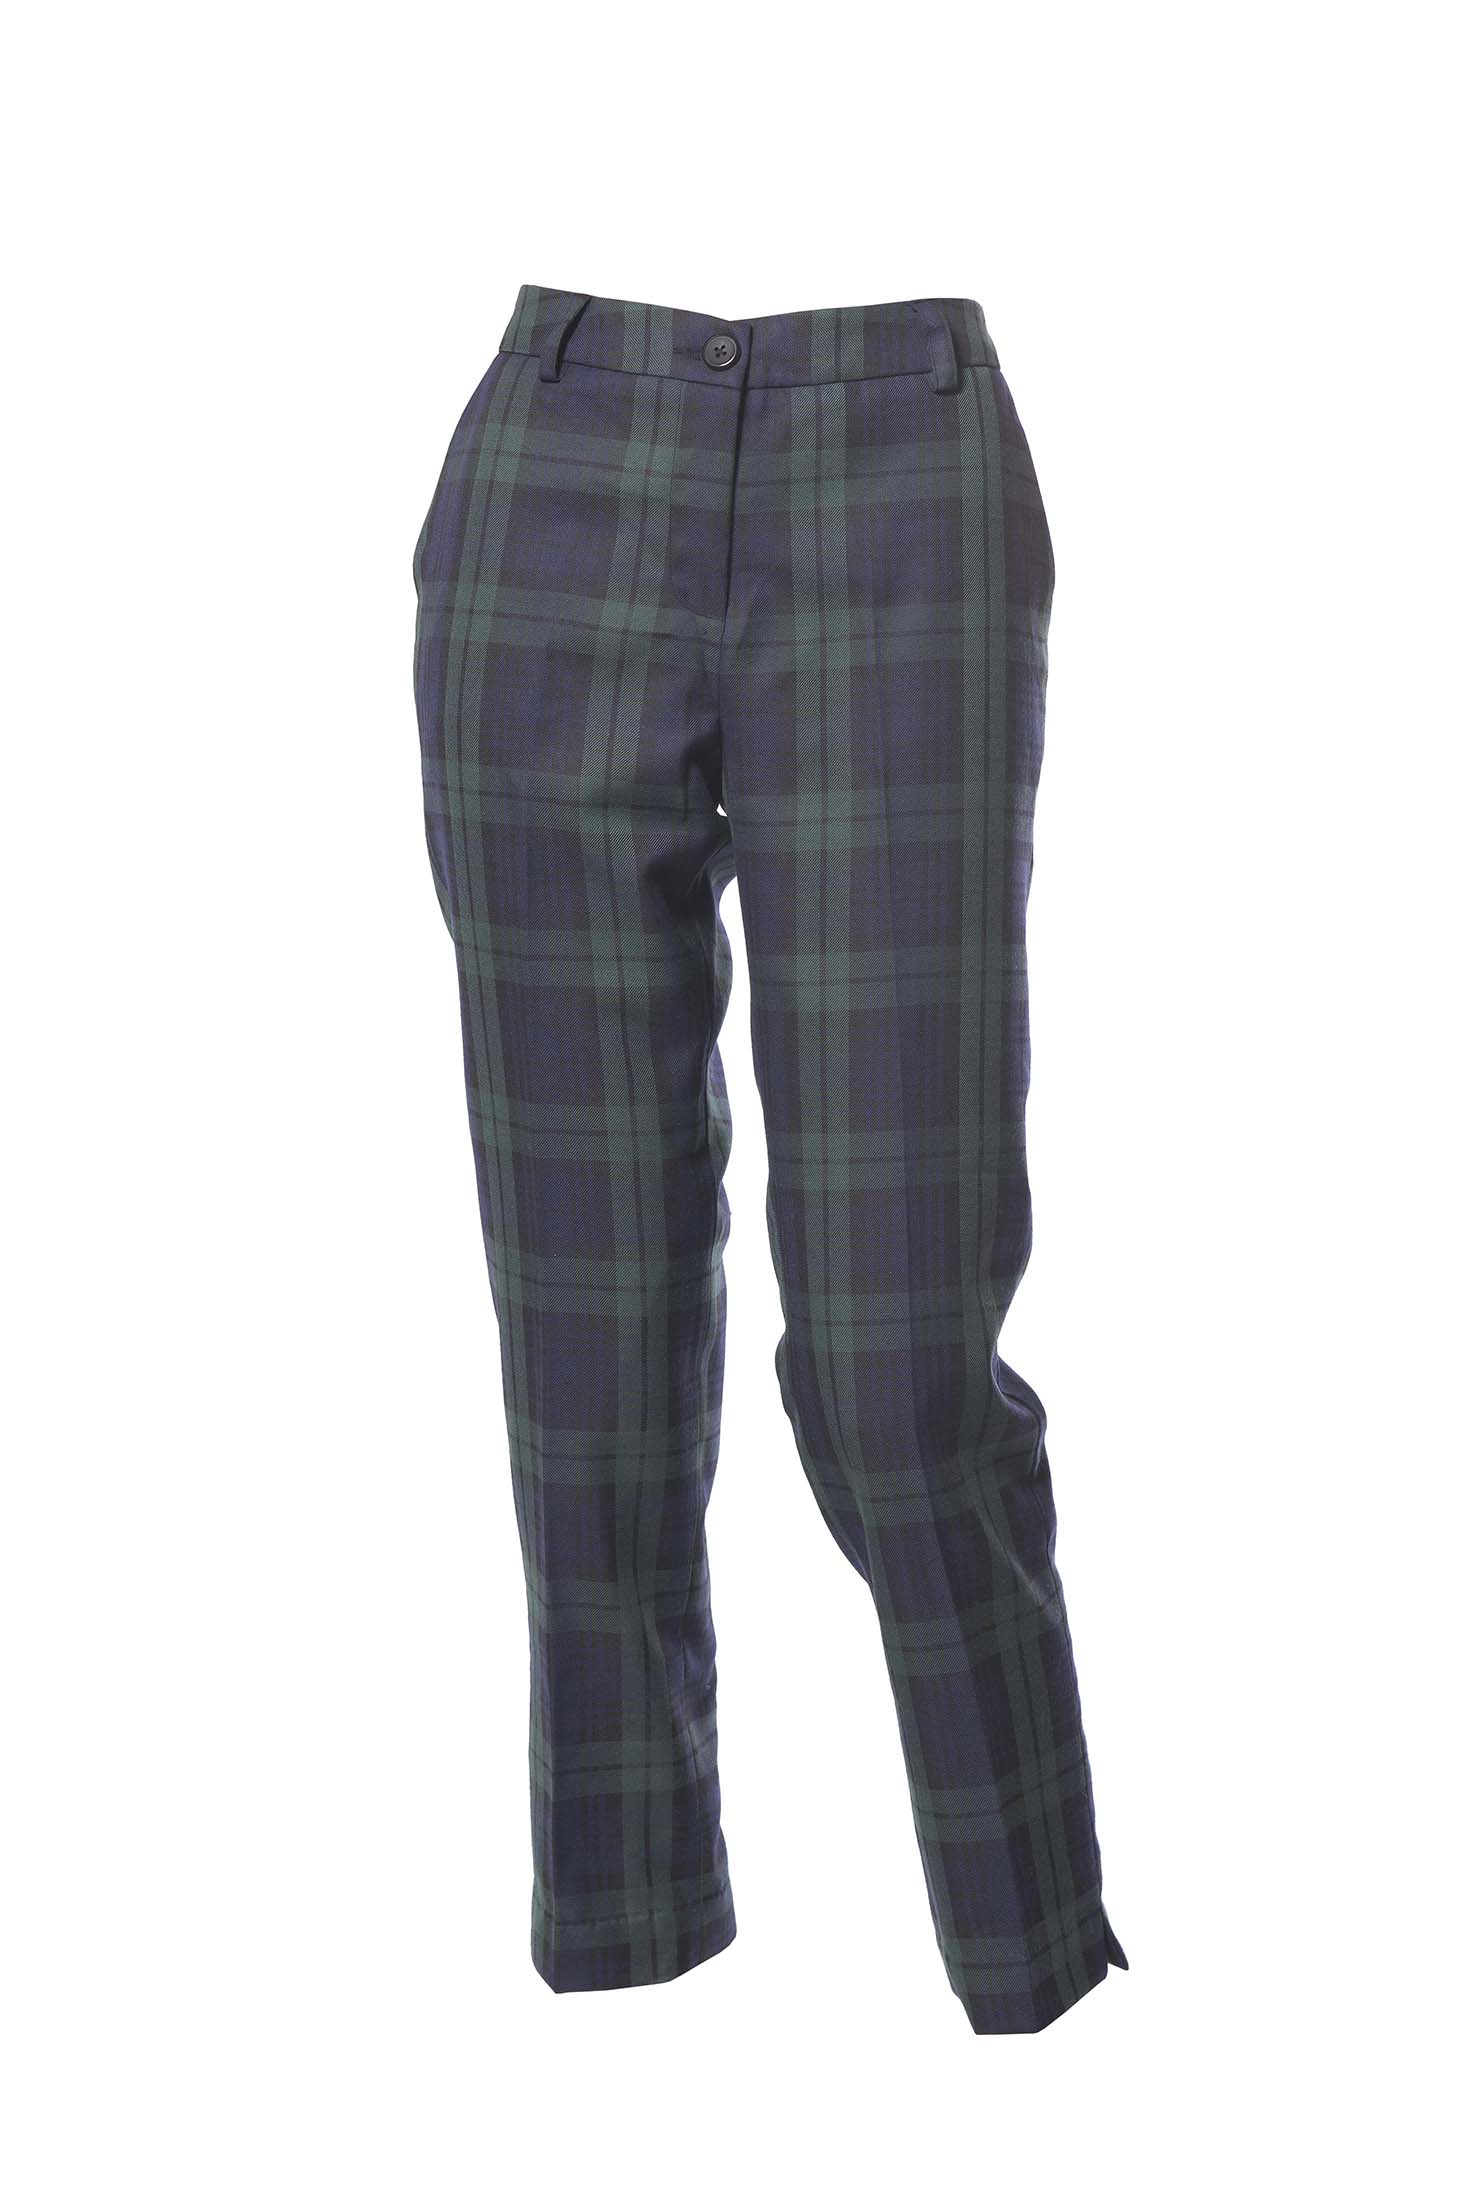 Pendleton Women's Worsted Flannel True Fit Trousers, Carnegie Worsted Flannel Tartan, 6 Made-in-usa women's wool pants updated for today with a unique fusion of hounds tooth and checks. Better-than-ever worsted fabric is soft, smooth and lightly brushed.